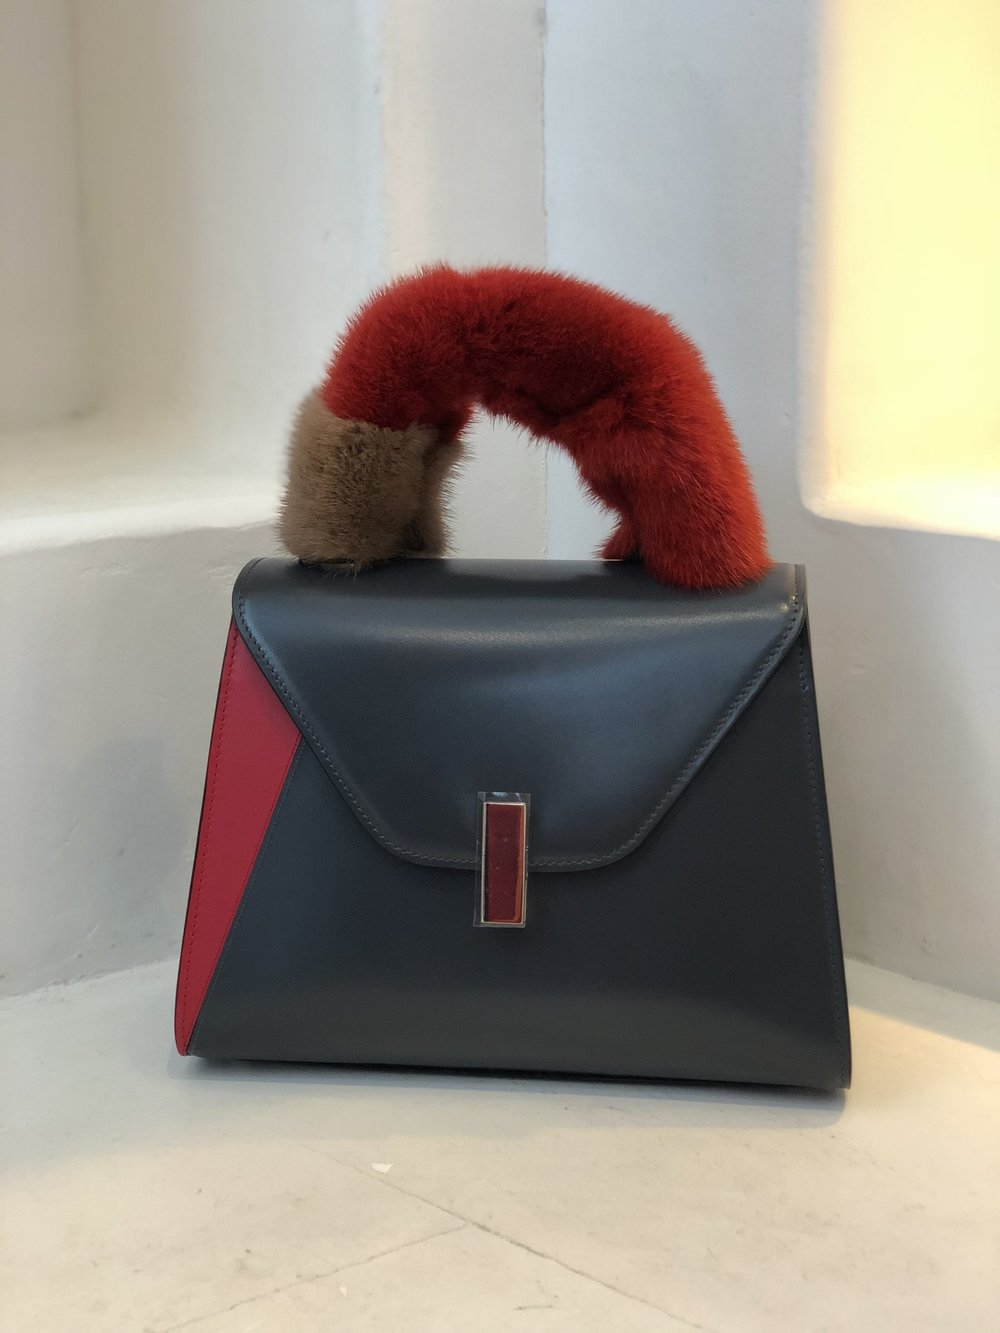 . . . followed by this gorgeous little Valextra bag (complete with detachable fuzzy handle)